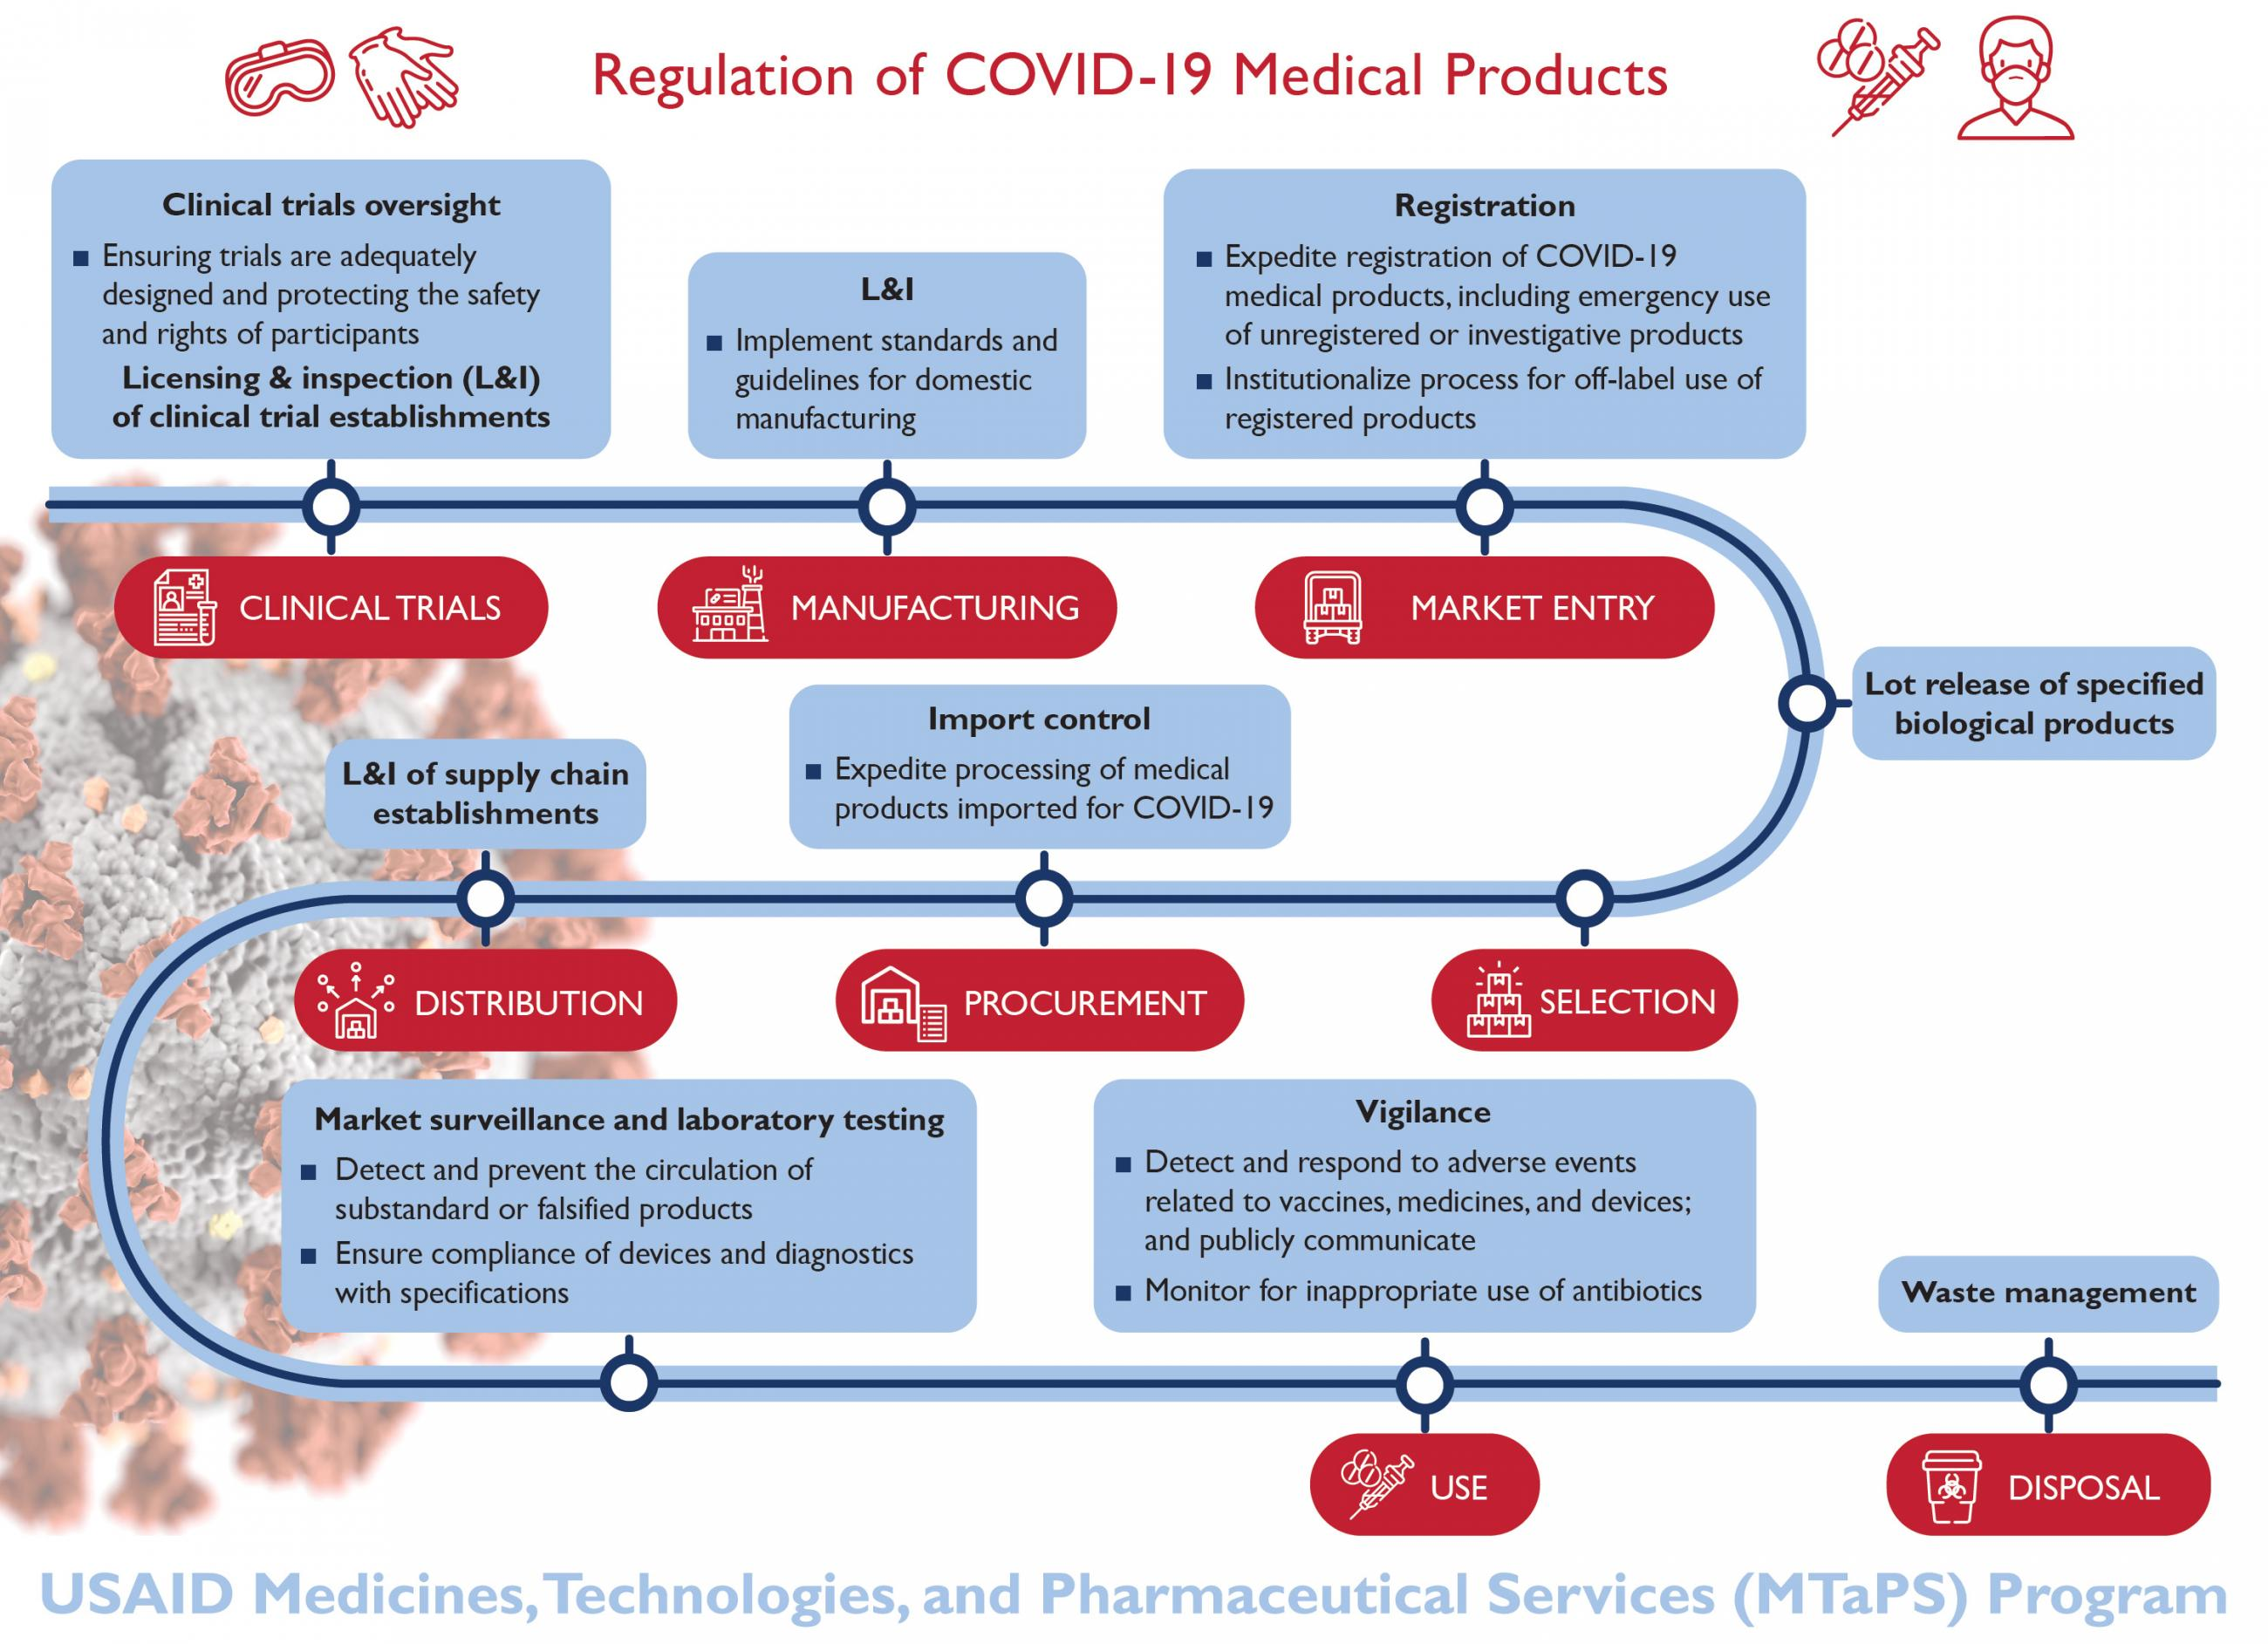 The image shows a flowchart showing the different regulatory stages of medical products.